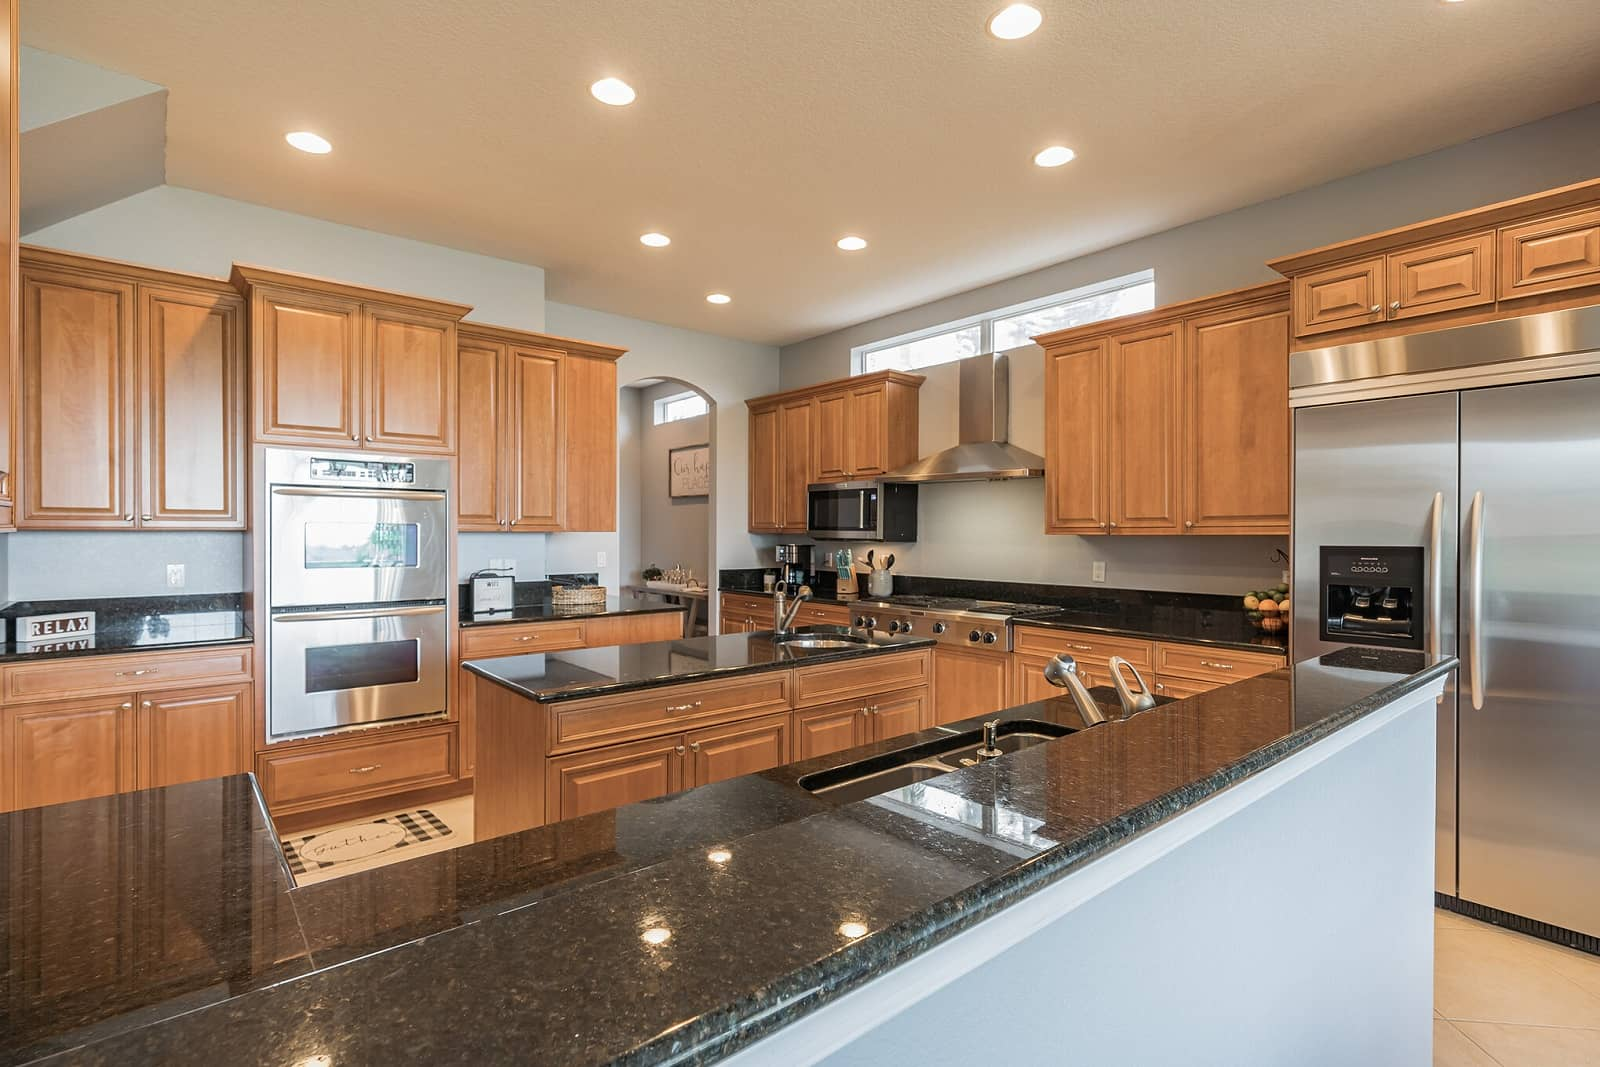 Real Estate Photography in Port St. Lucie - FL - USA - Kitchen View